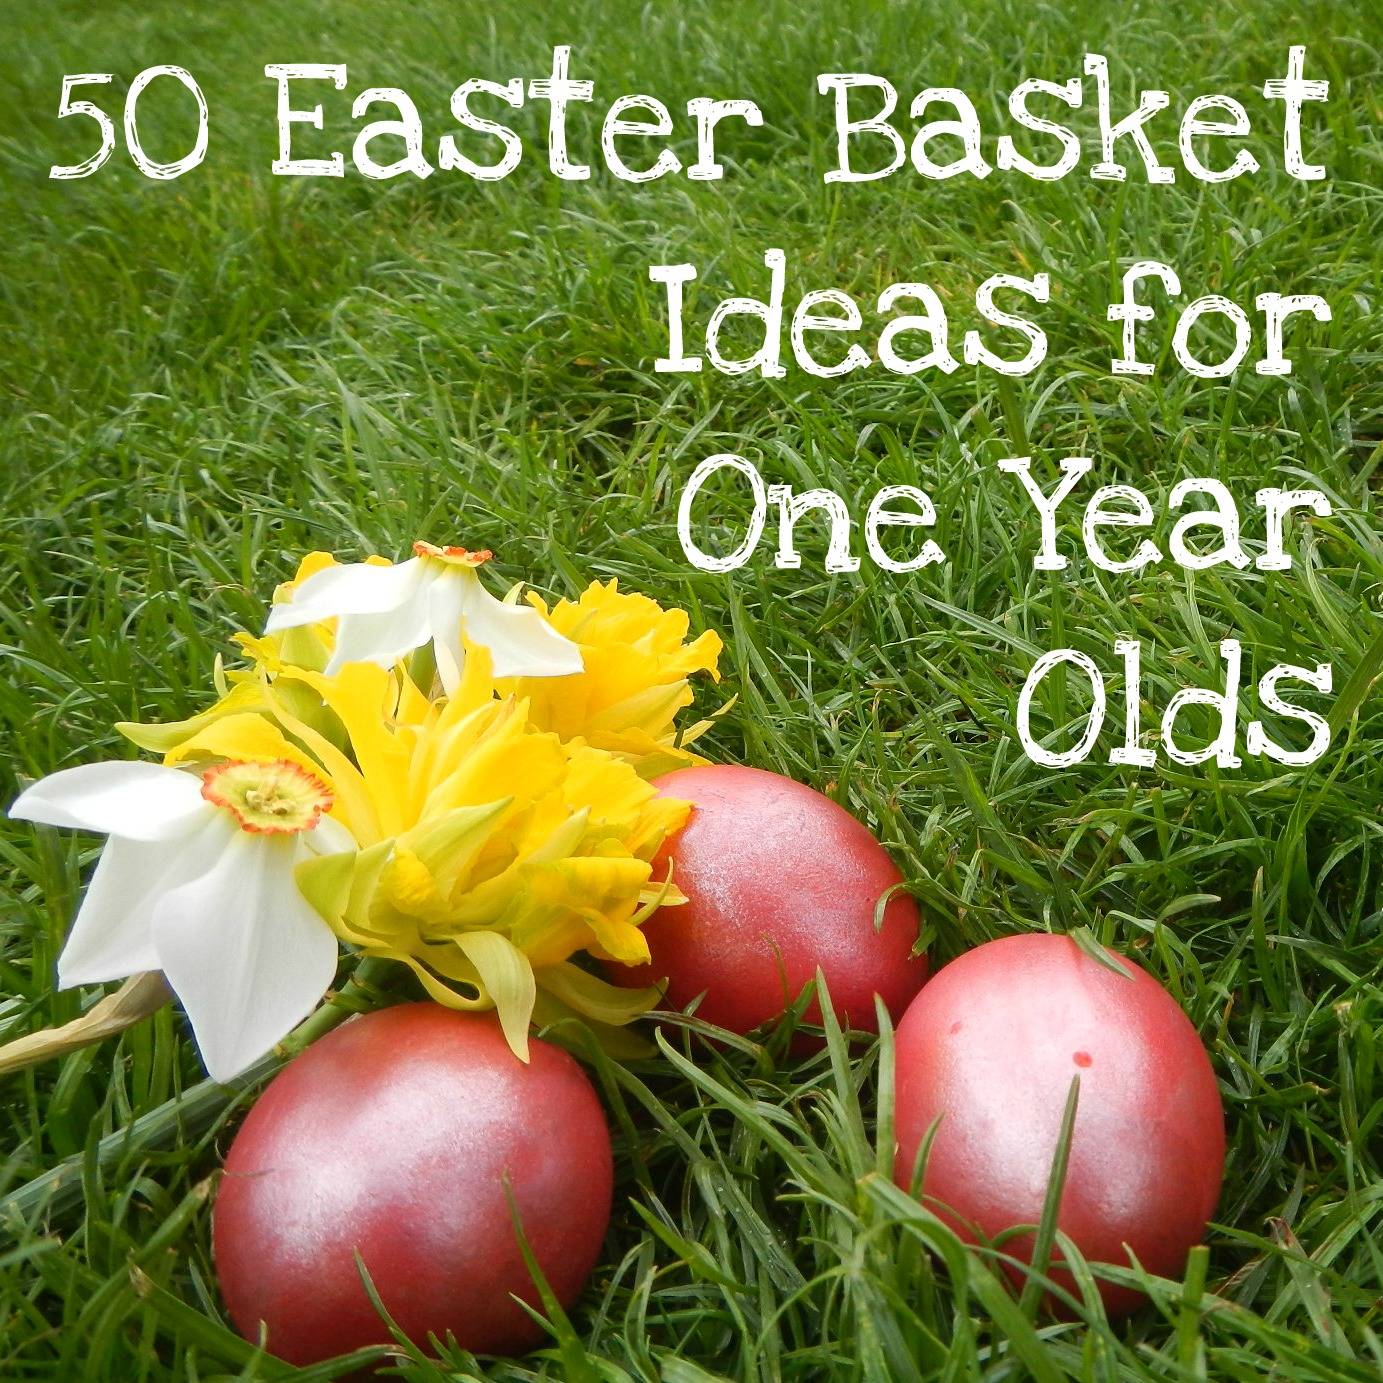 Messy Wife Blessed Life 50 Easter Basket Ideas For One Year Olds